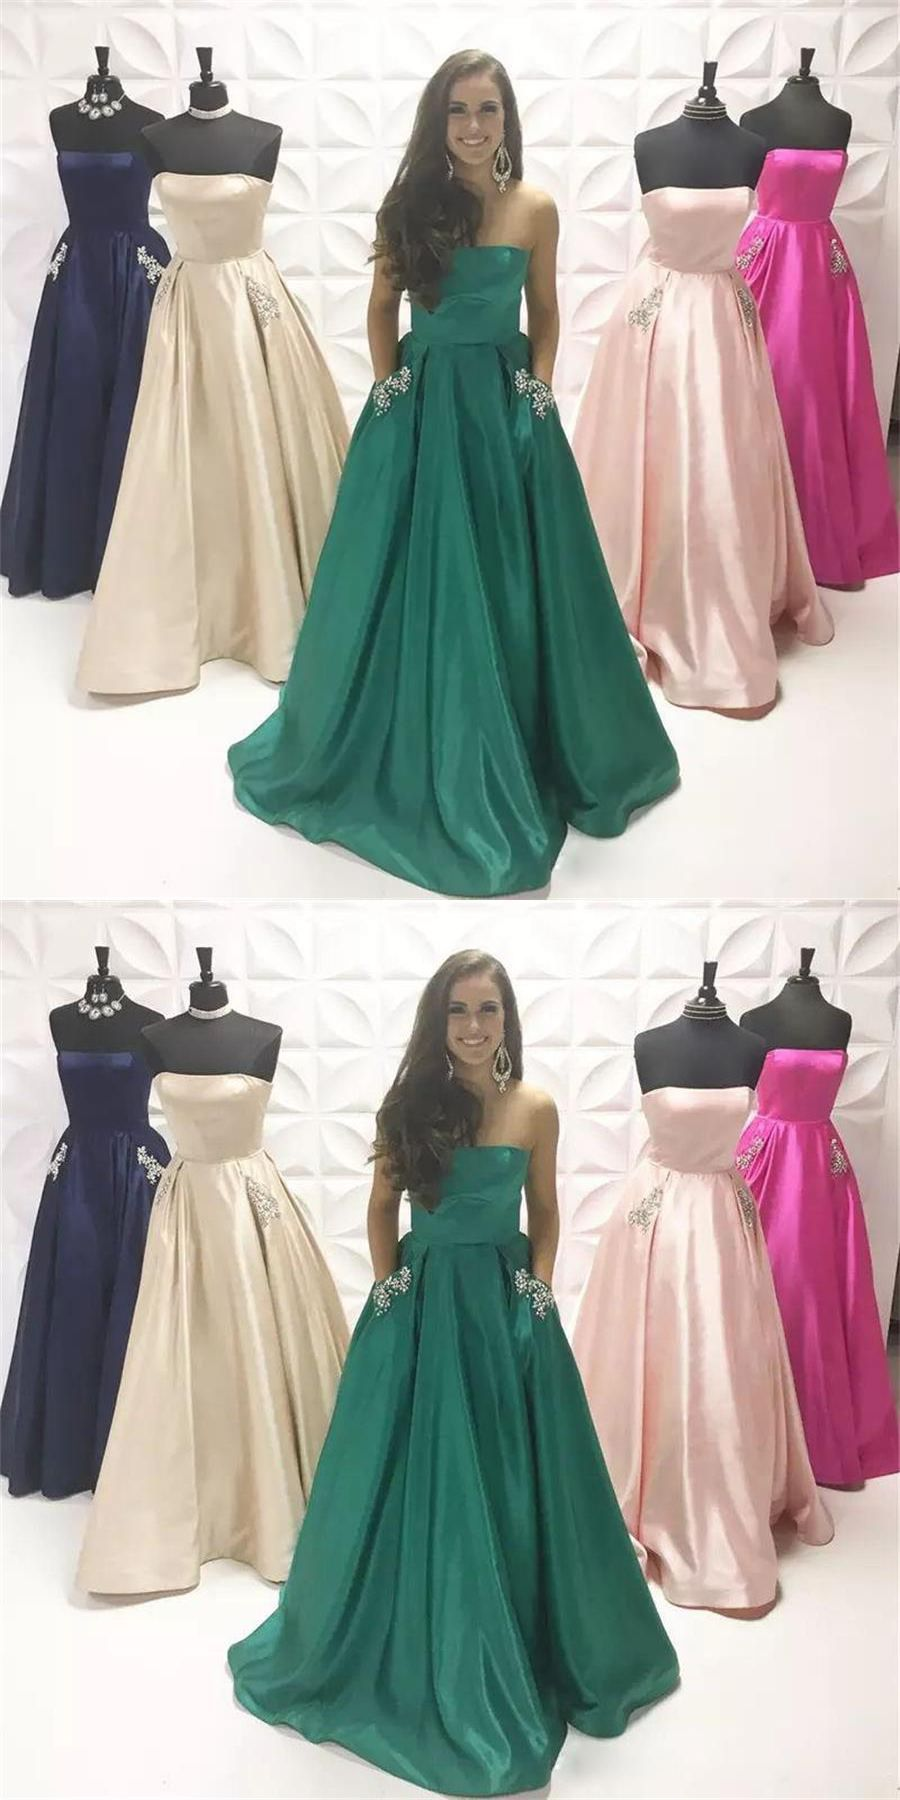 8693f7d85  bohogown  promdresses  promdress  promgowns  longpromdresses   greenpromdresses  pinkpromdresses  blue